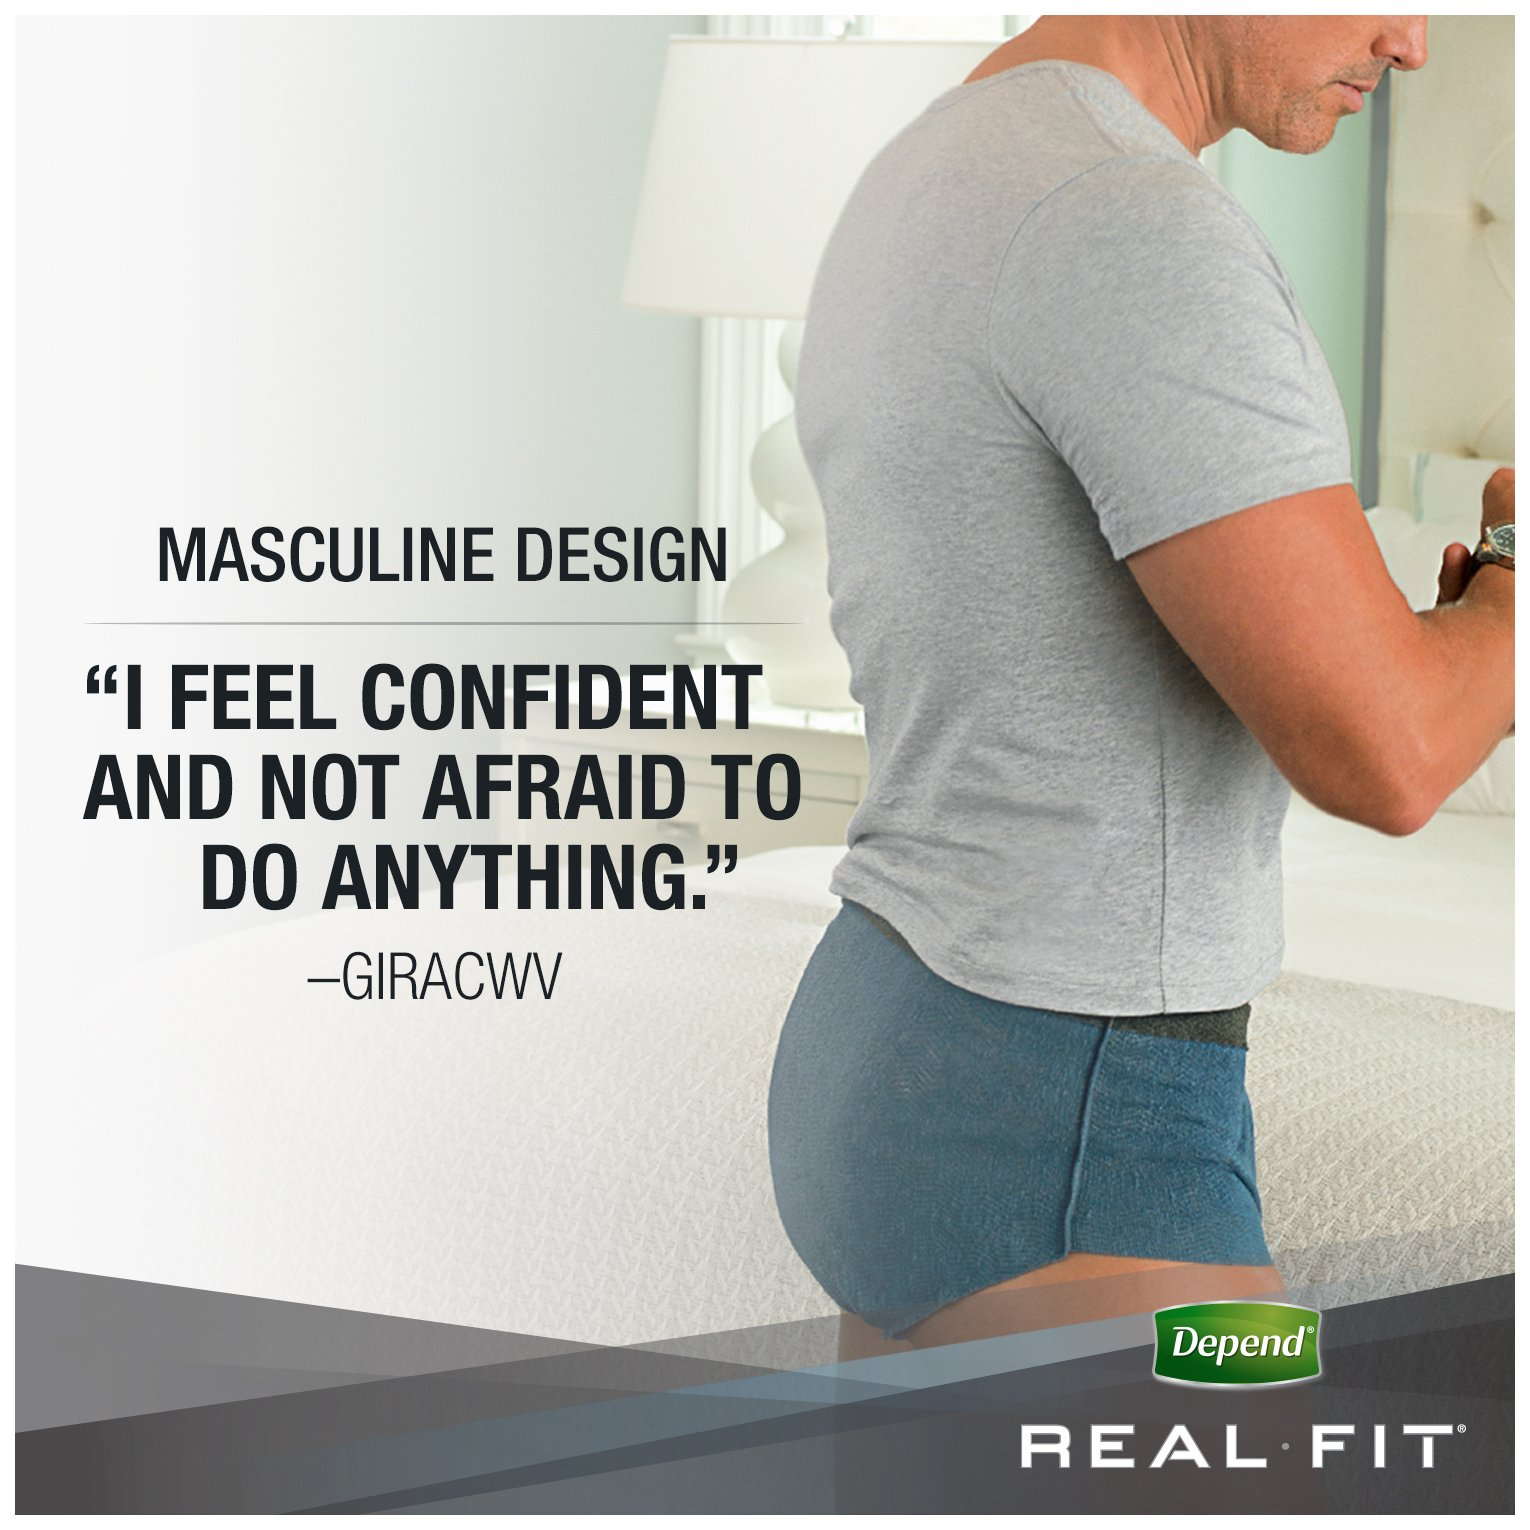 Depend Real Fit Incontinence Briefs for Men, Maximum Absorbency, S/M, Grey by Depend (Image #7)